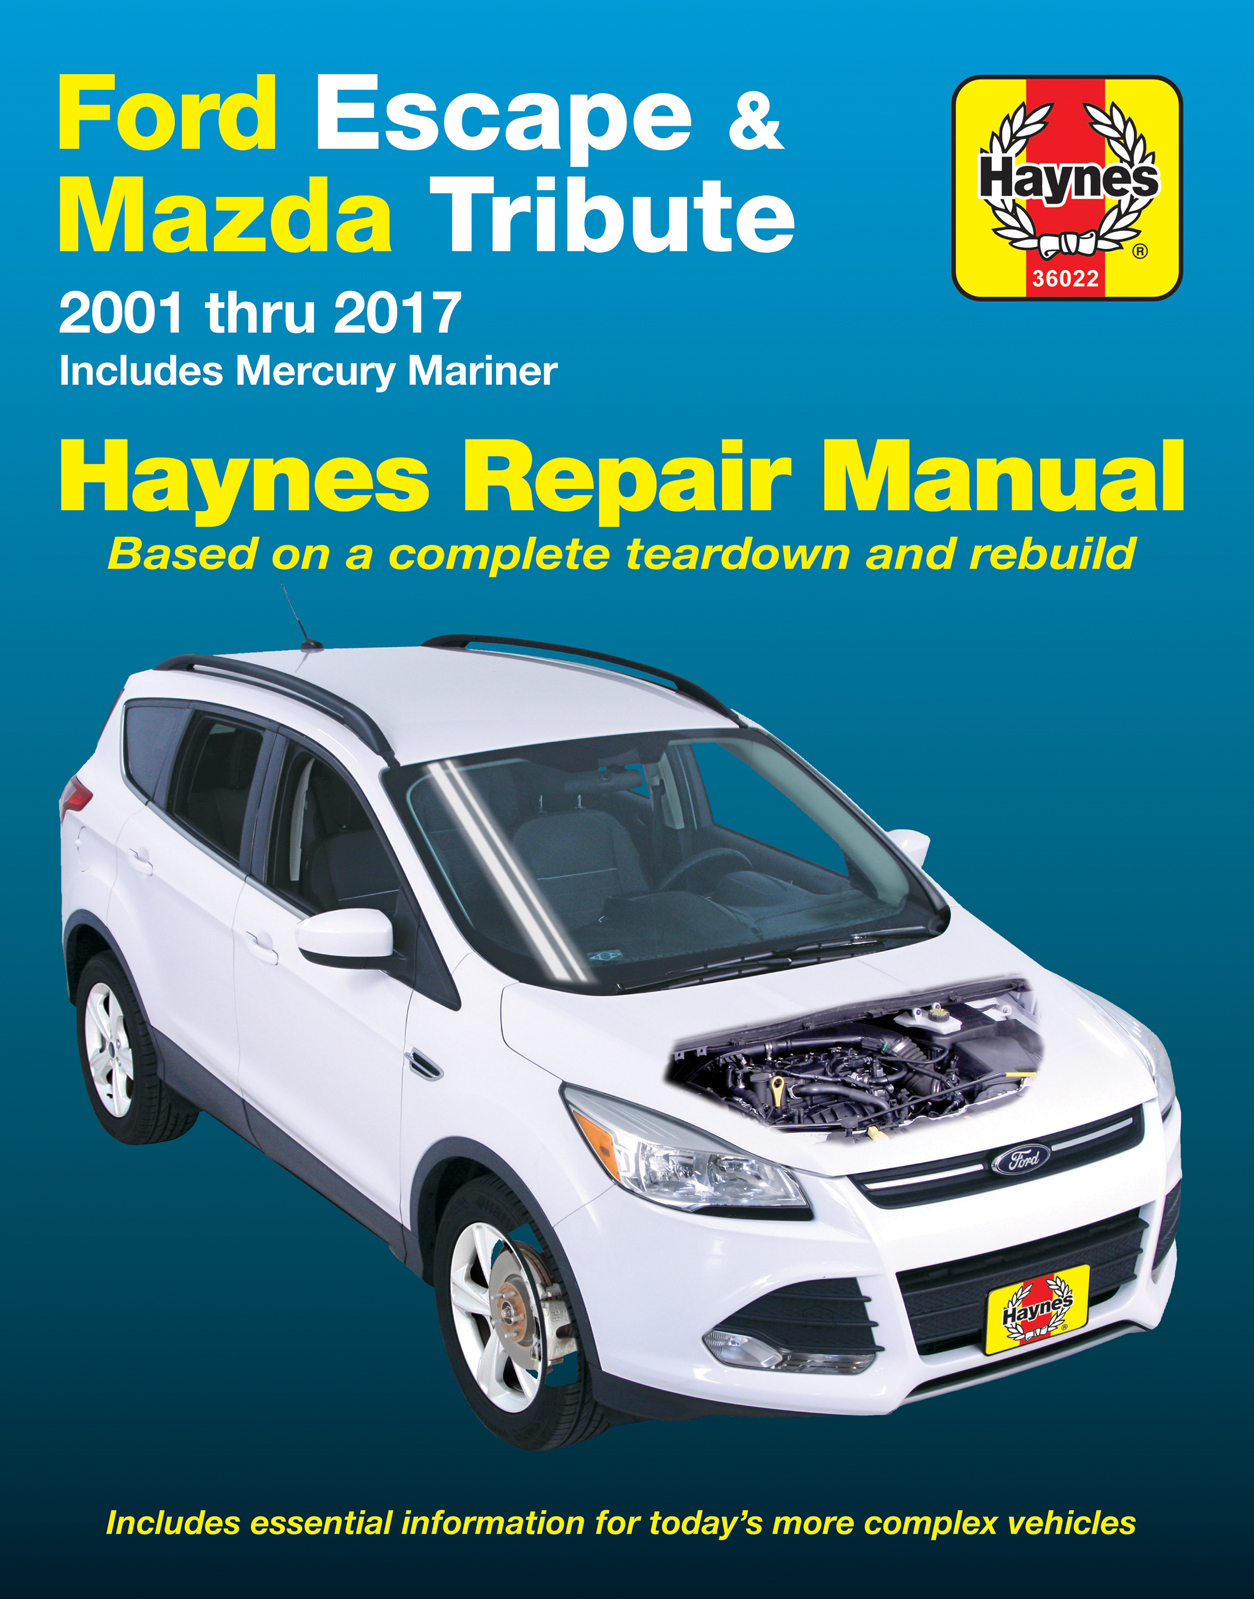 Ford Escape (2001 - 2017) Repair Manuals on